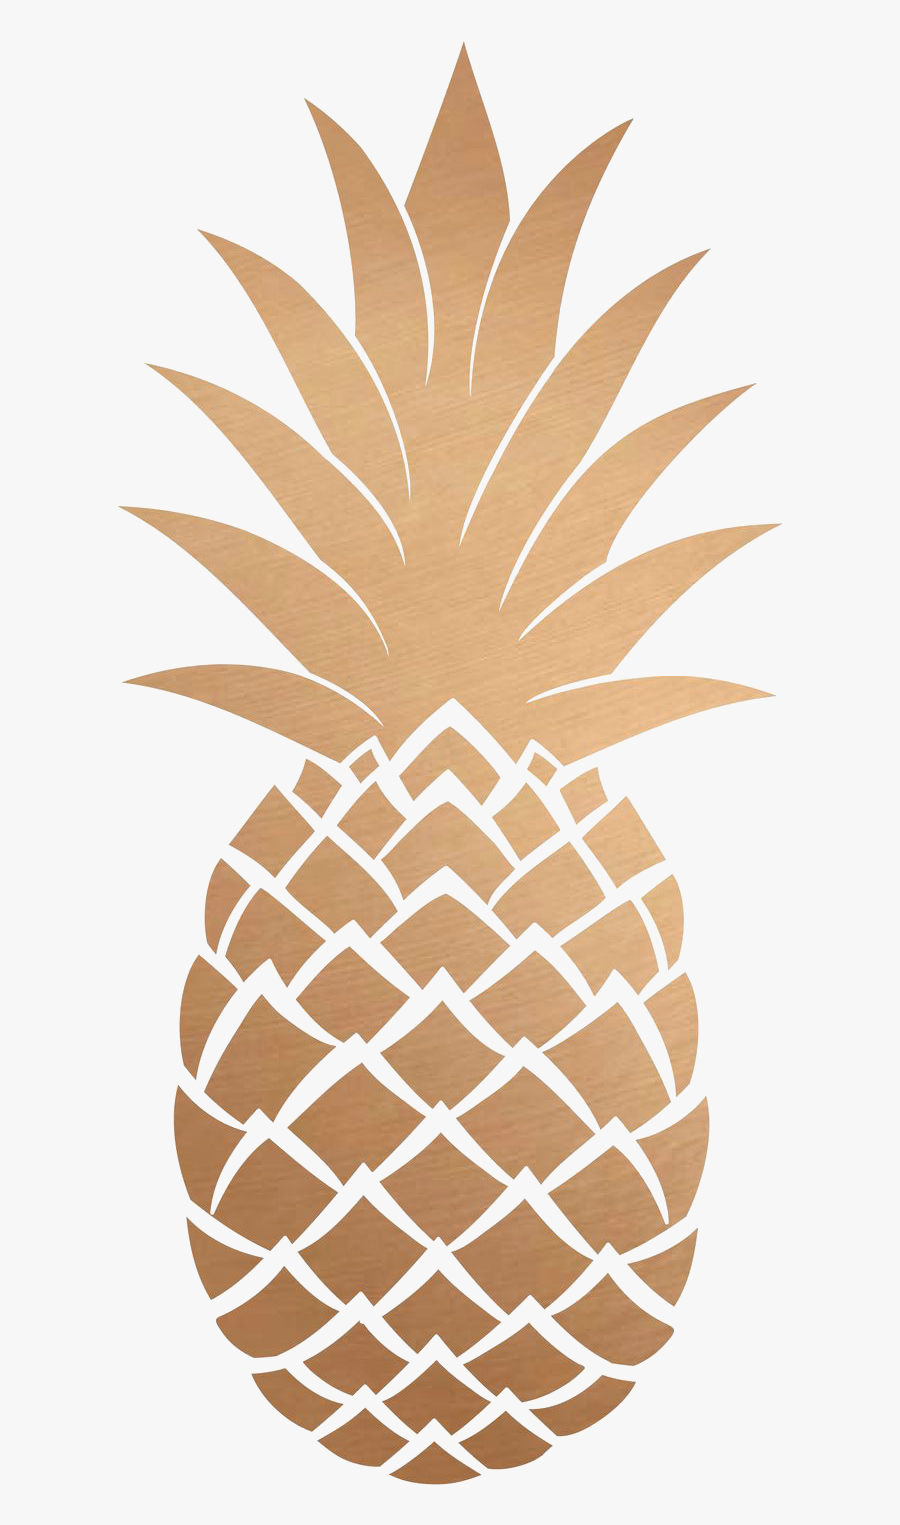 Pia Png Tumblr Gold Pineapple Transparent Background- - Gold Pineapple Transparent Background, Transparent Clipart